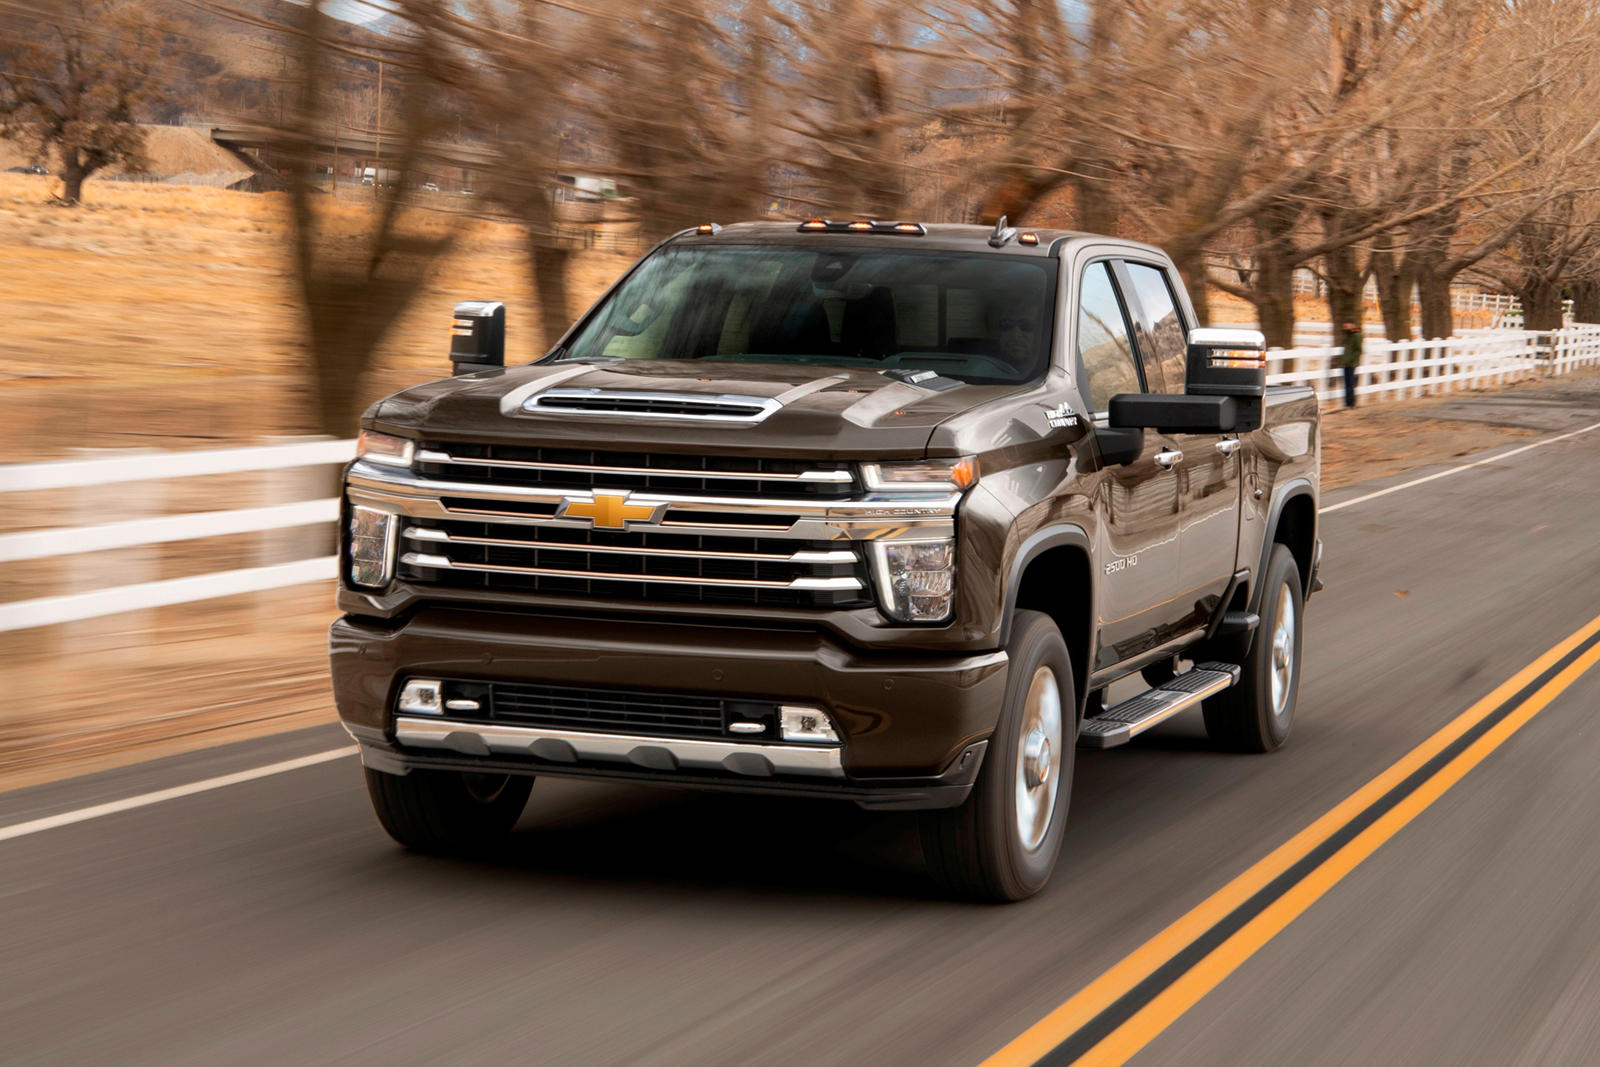 2021 Chevrolet Silverado HD Coming With Improved Tech ...